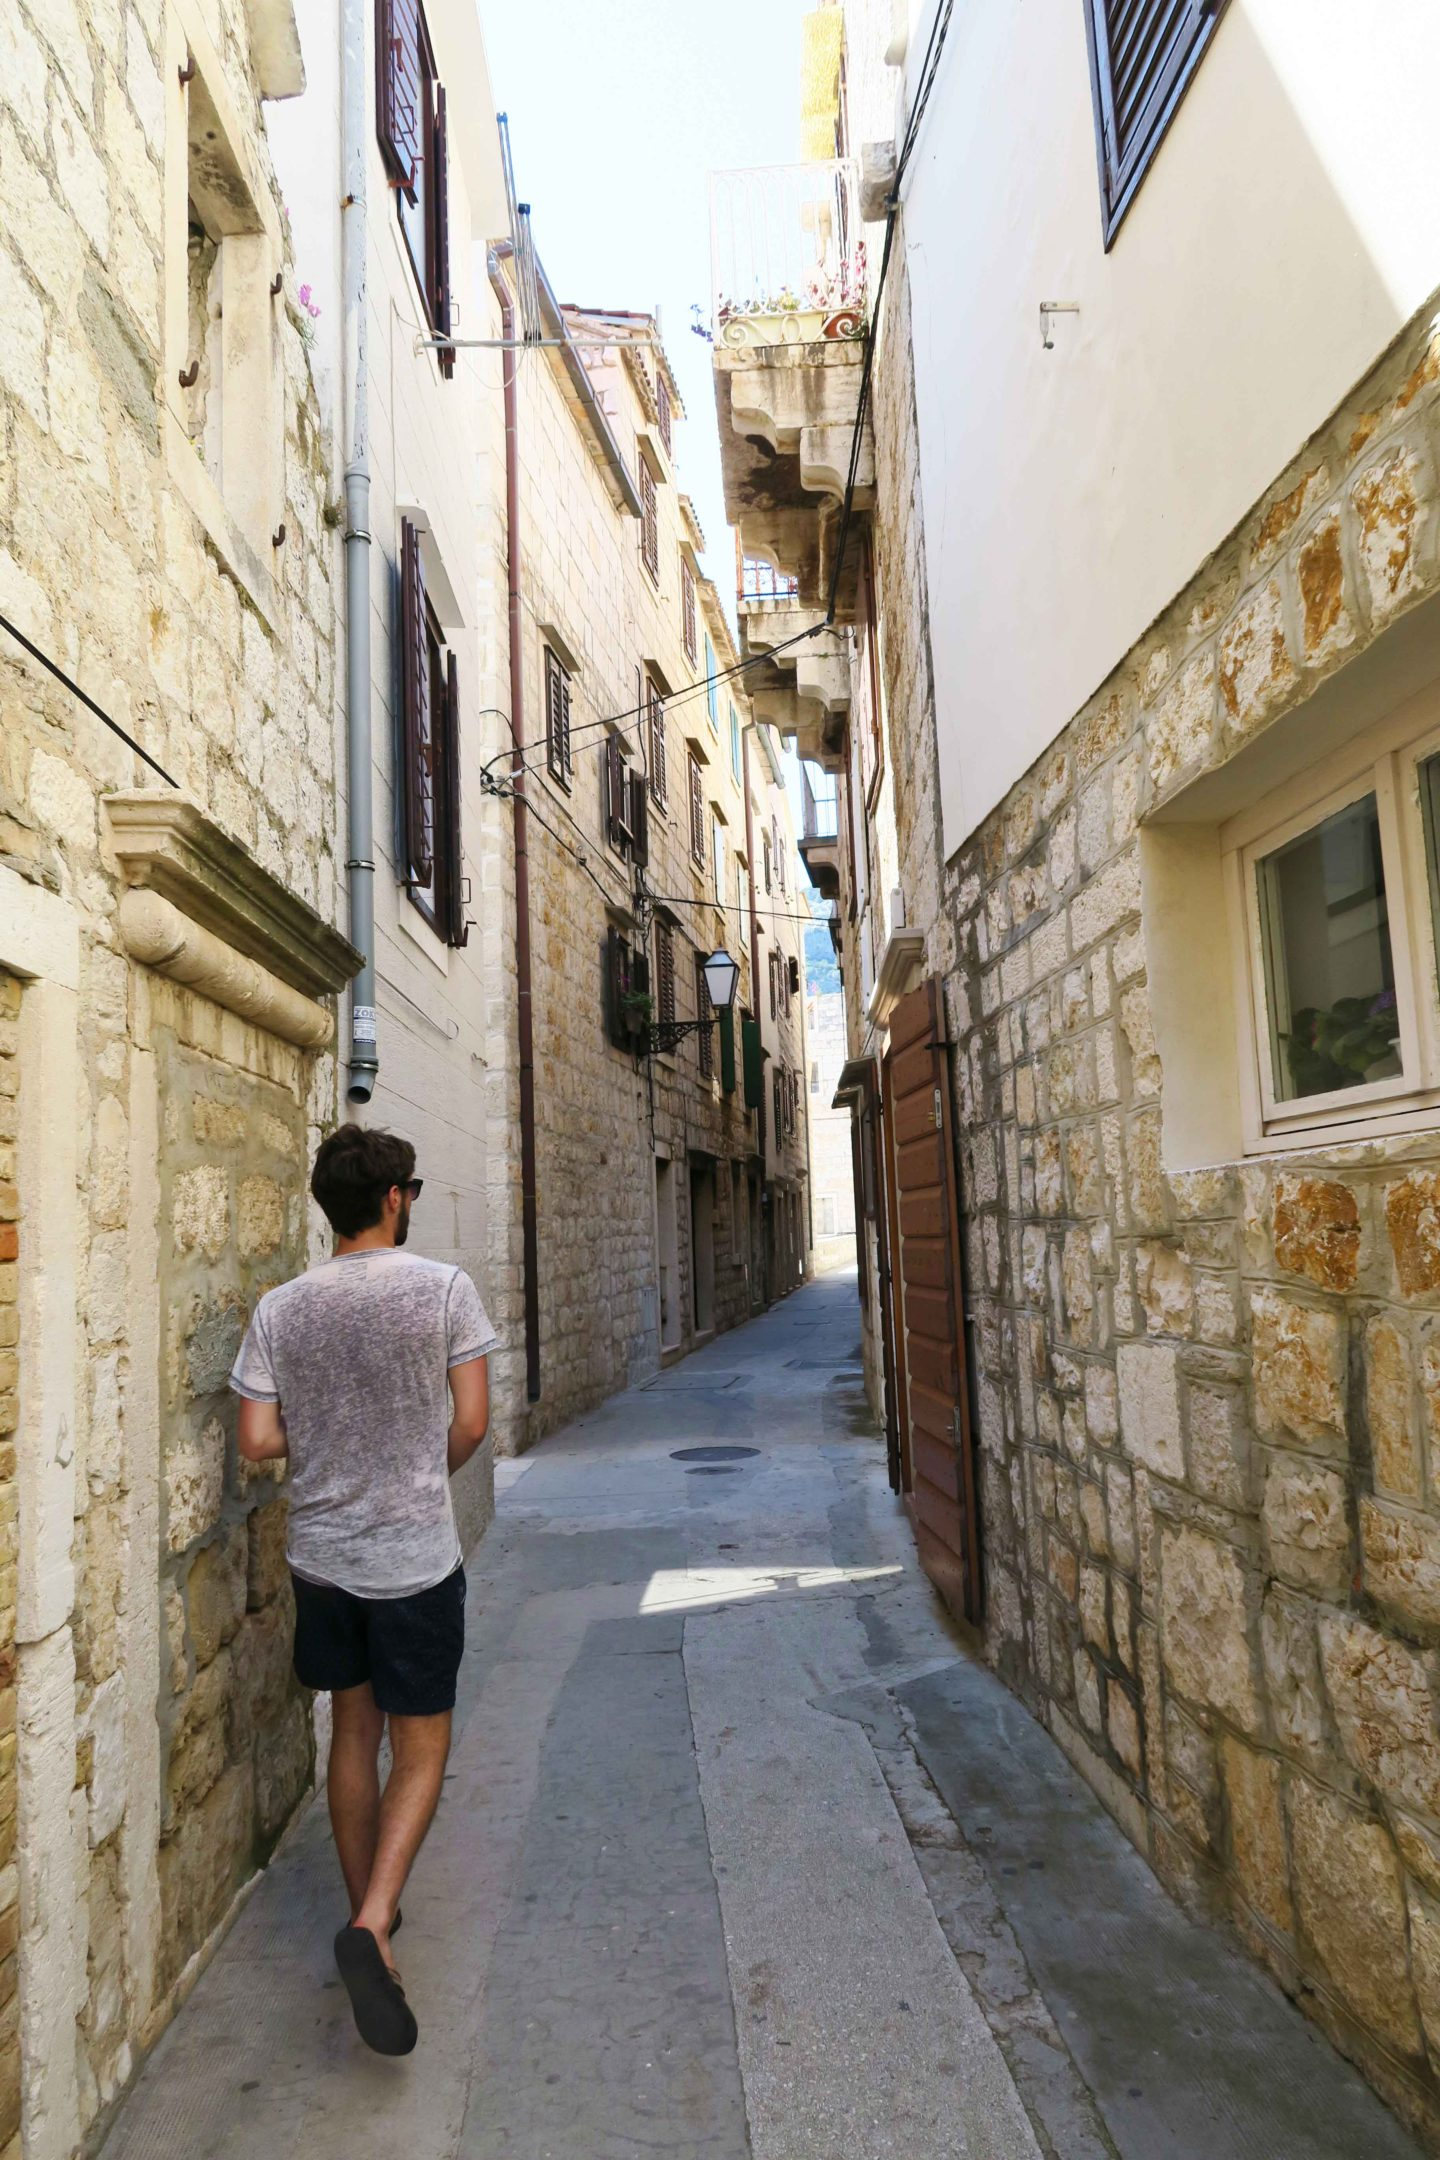 Sam Gill walking the streets of Komiza town in Vis, Croatia